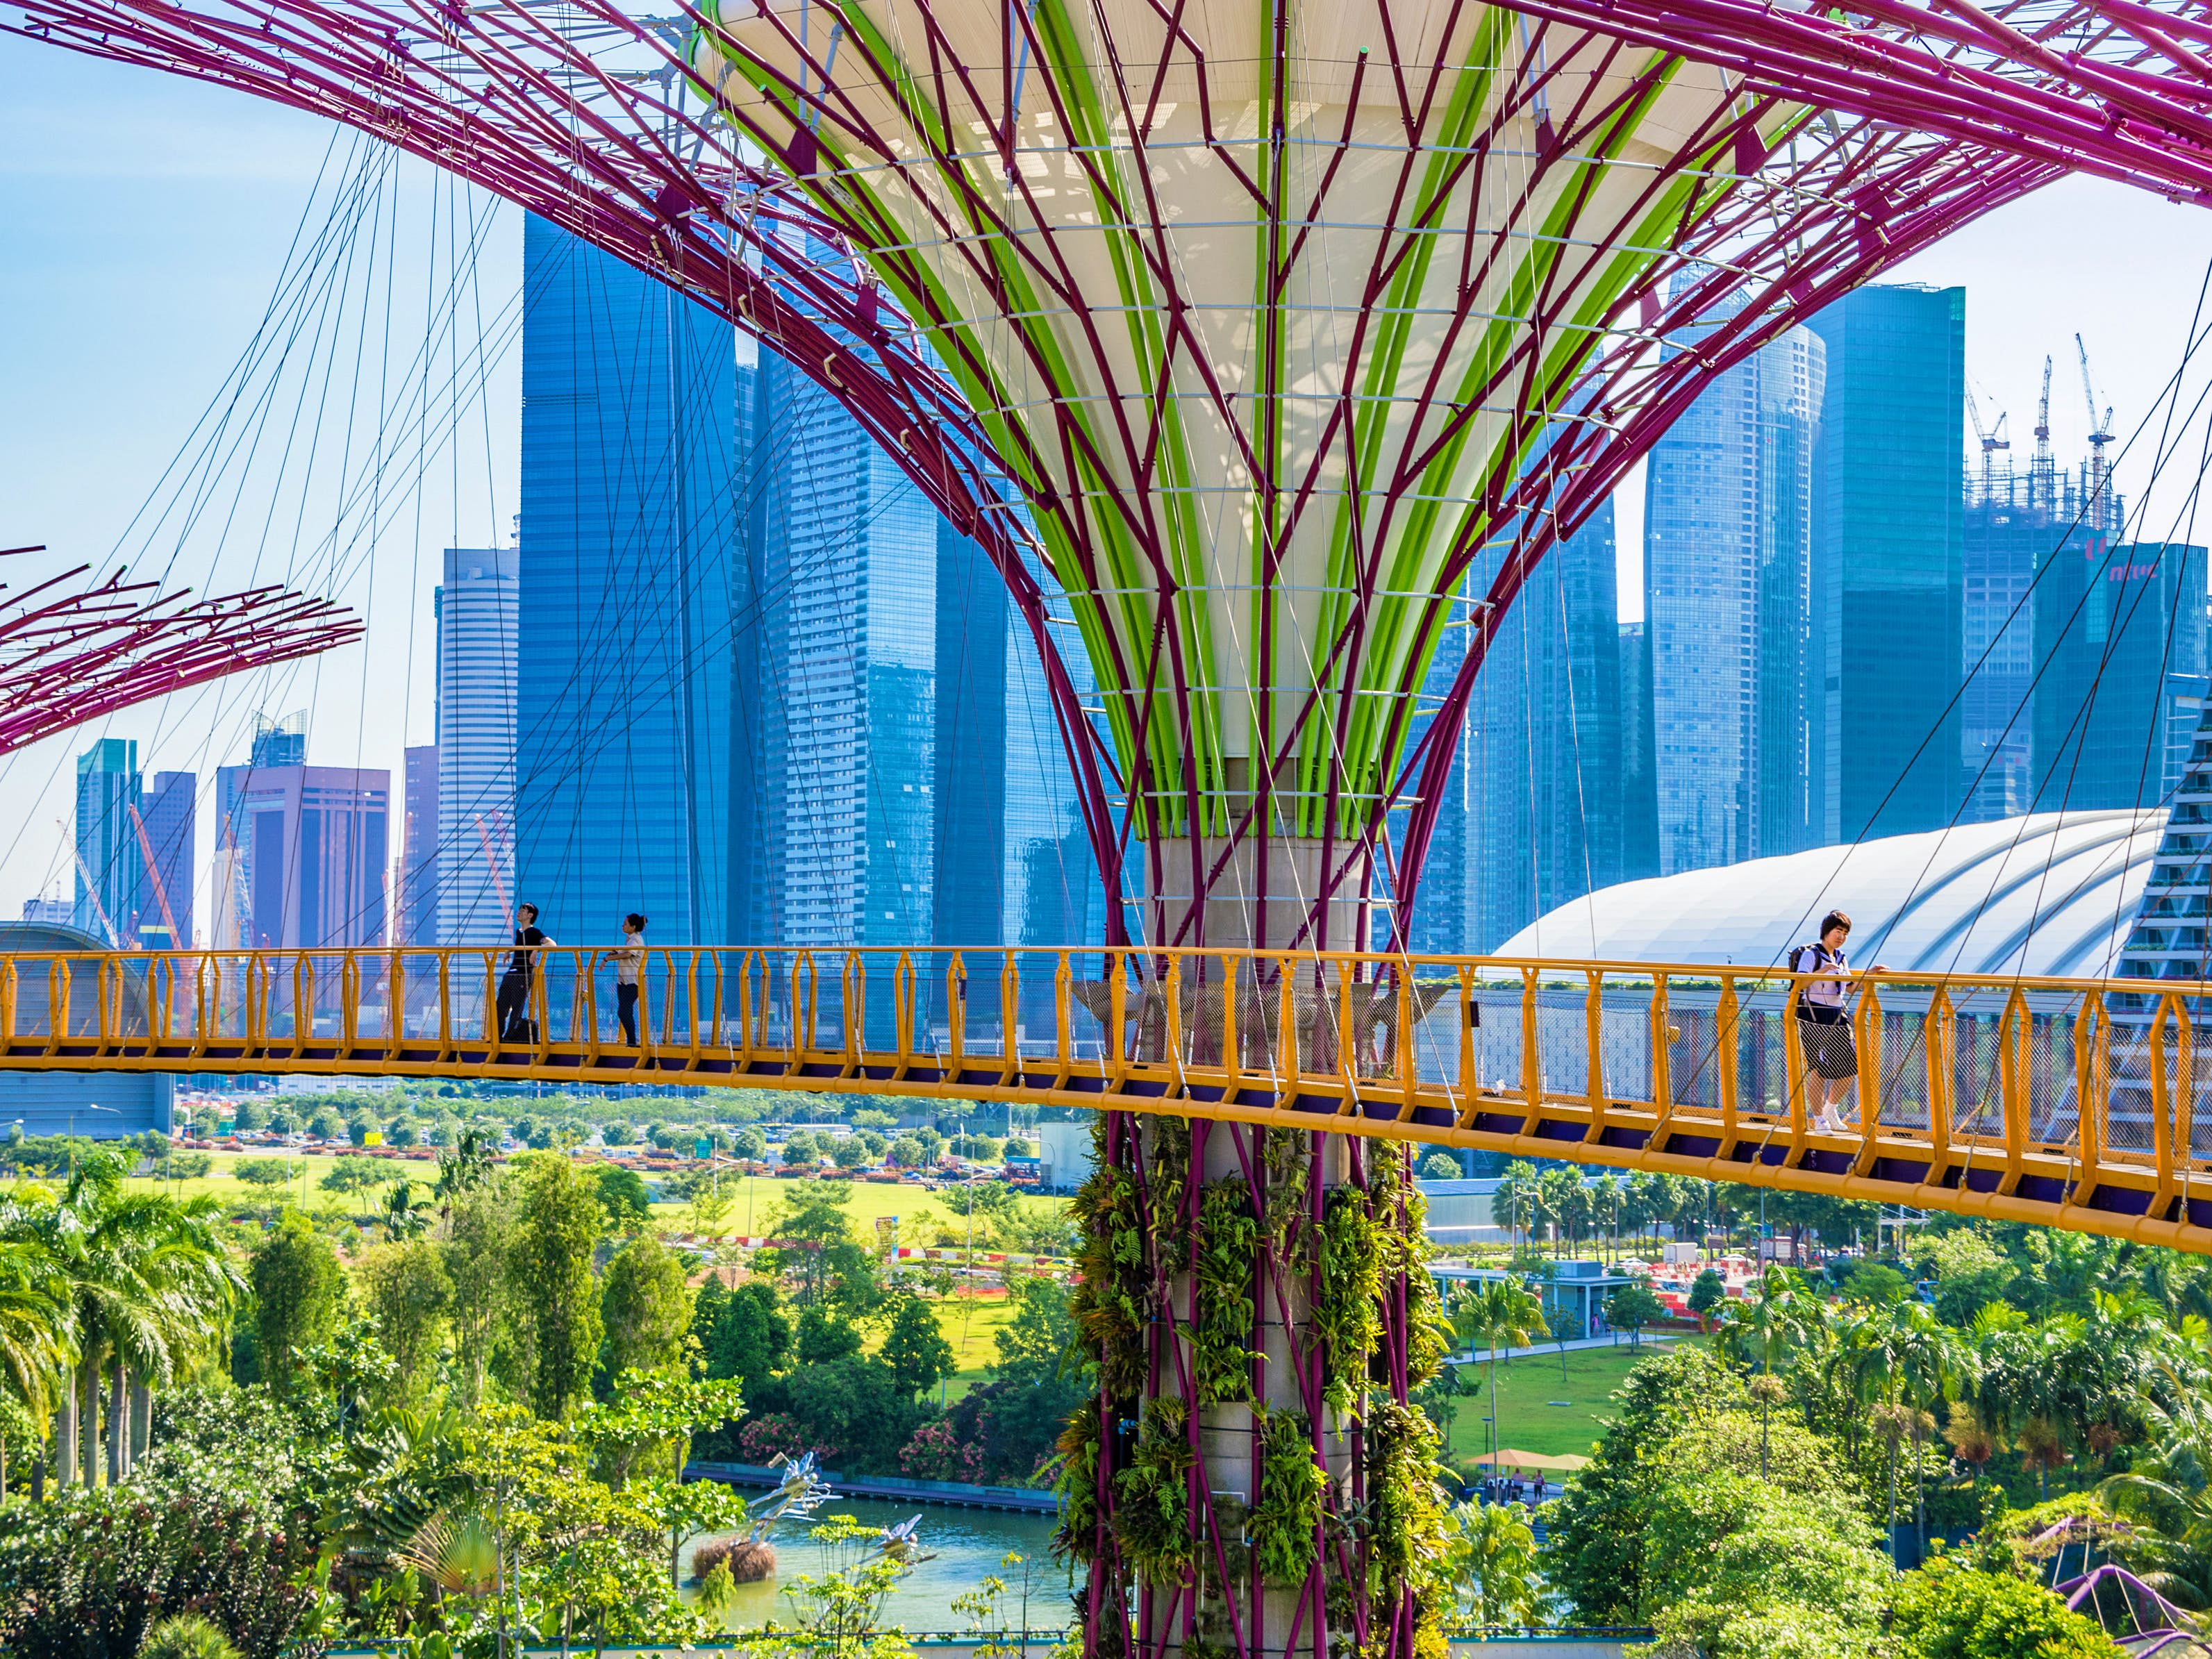 People walk along one of the hanging bridges that forms part of Singapore's futuristic Gardens by the Bay. In the background a number of glass skyscrapers are visible.